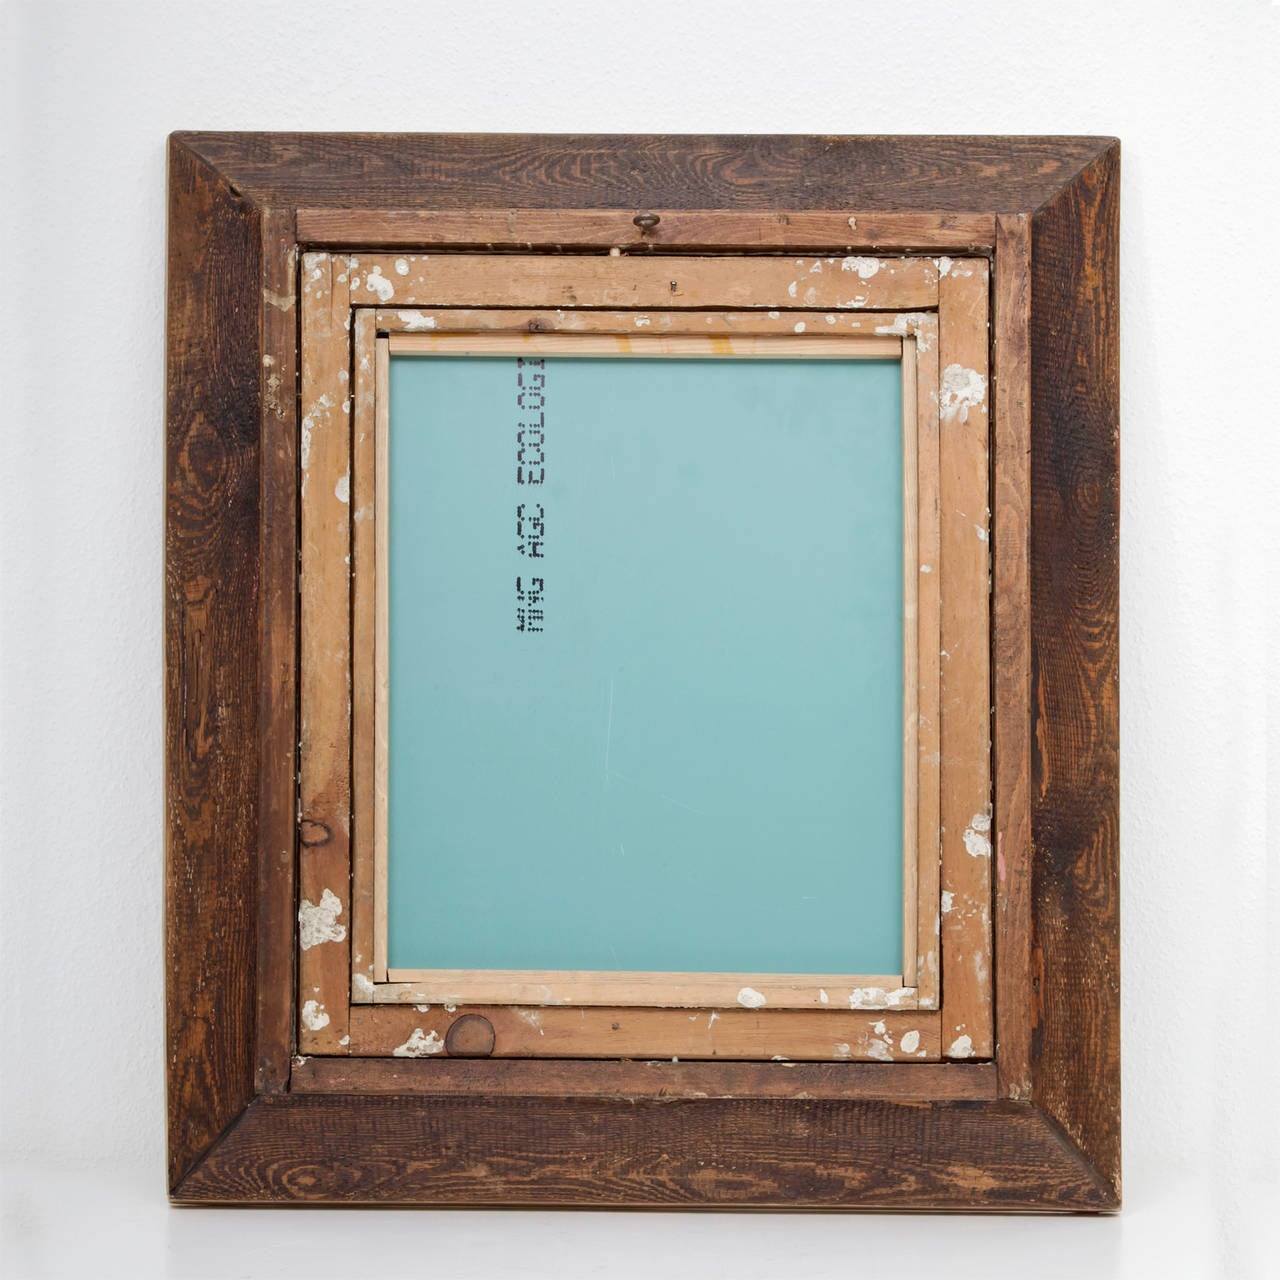 Stucco On Frame : Mirror in richly ornamented stucco frame s at stdibs